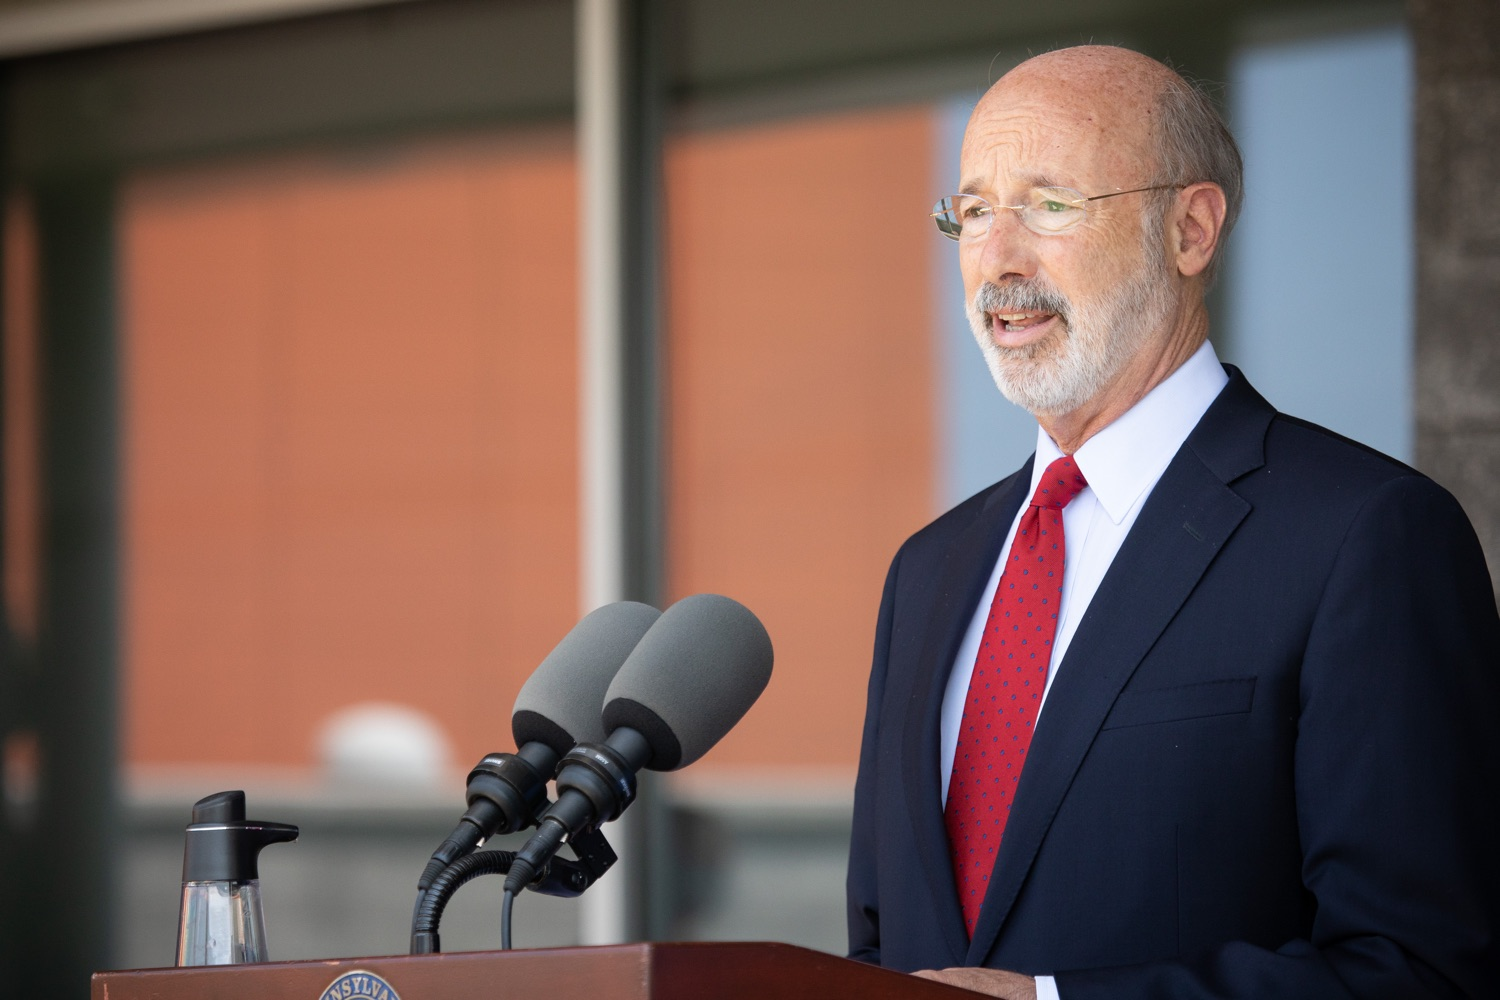 "<a href=""https://filesource.wostreaming.net/commonwealthofpa/photo/18143_gov_cares_dz_12.jpg"" target=""_blank"">⇣ Download Photo<br></a>Pennsylvania Governor Tom Wolf speaking with the press.  Governor Tom Wolf visited the child care center at PSECU headquarters in Harrisburg today to announce $53 million in additional financial support for child care providers that have suffered during COVID-19.  Harrisburg, PA  July 6, 2020.."